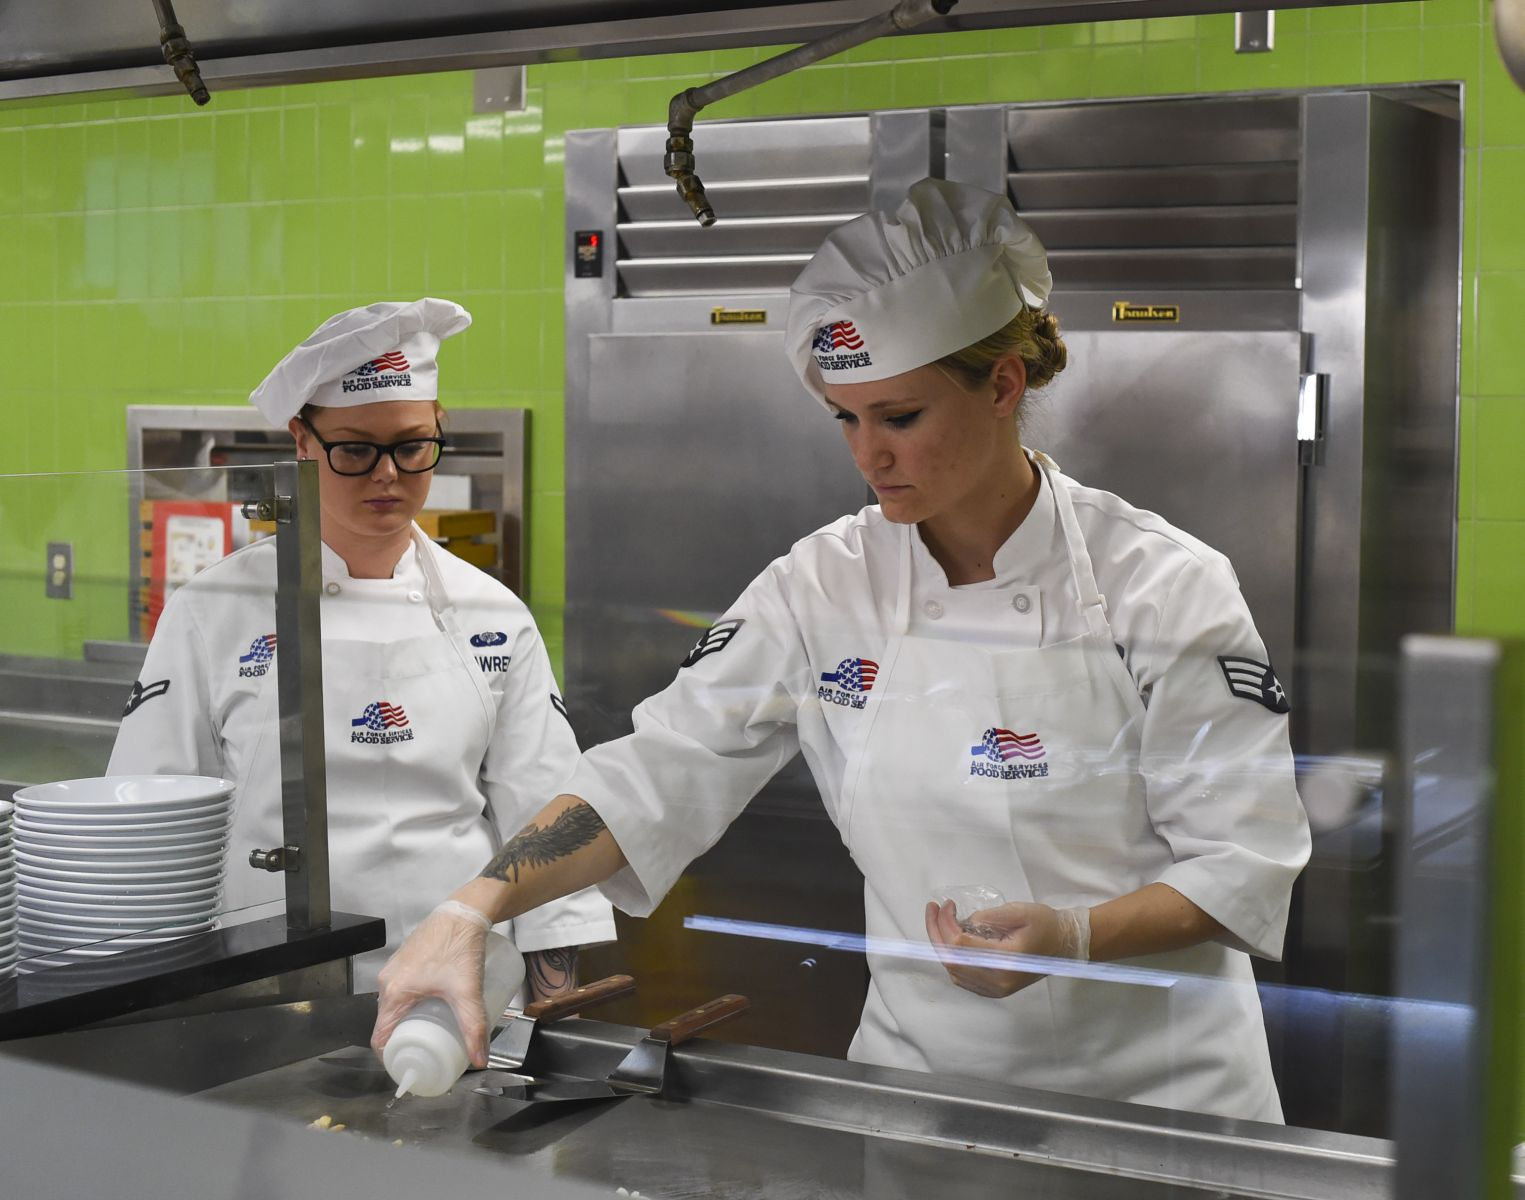 Food service workers serve patrons of Joint Base Charleston's newly renovated Gaylor Dining Facility. (Photo/Joint Base Charleston)